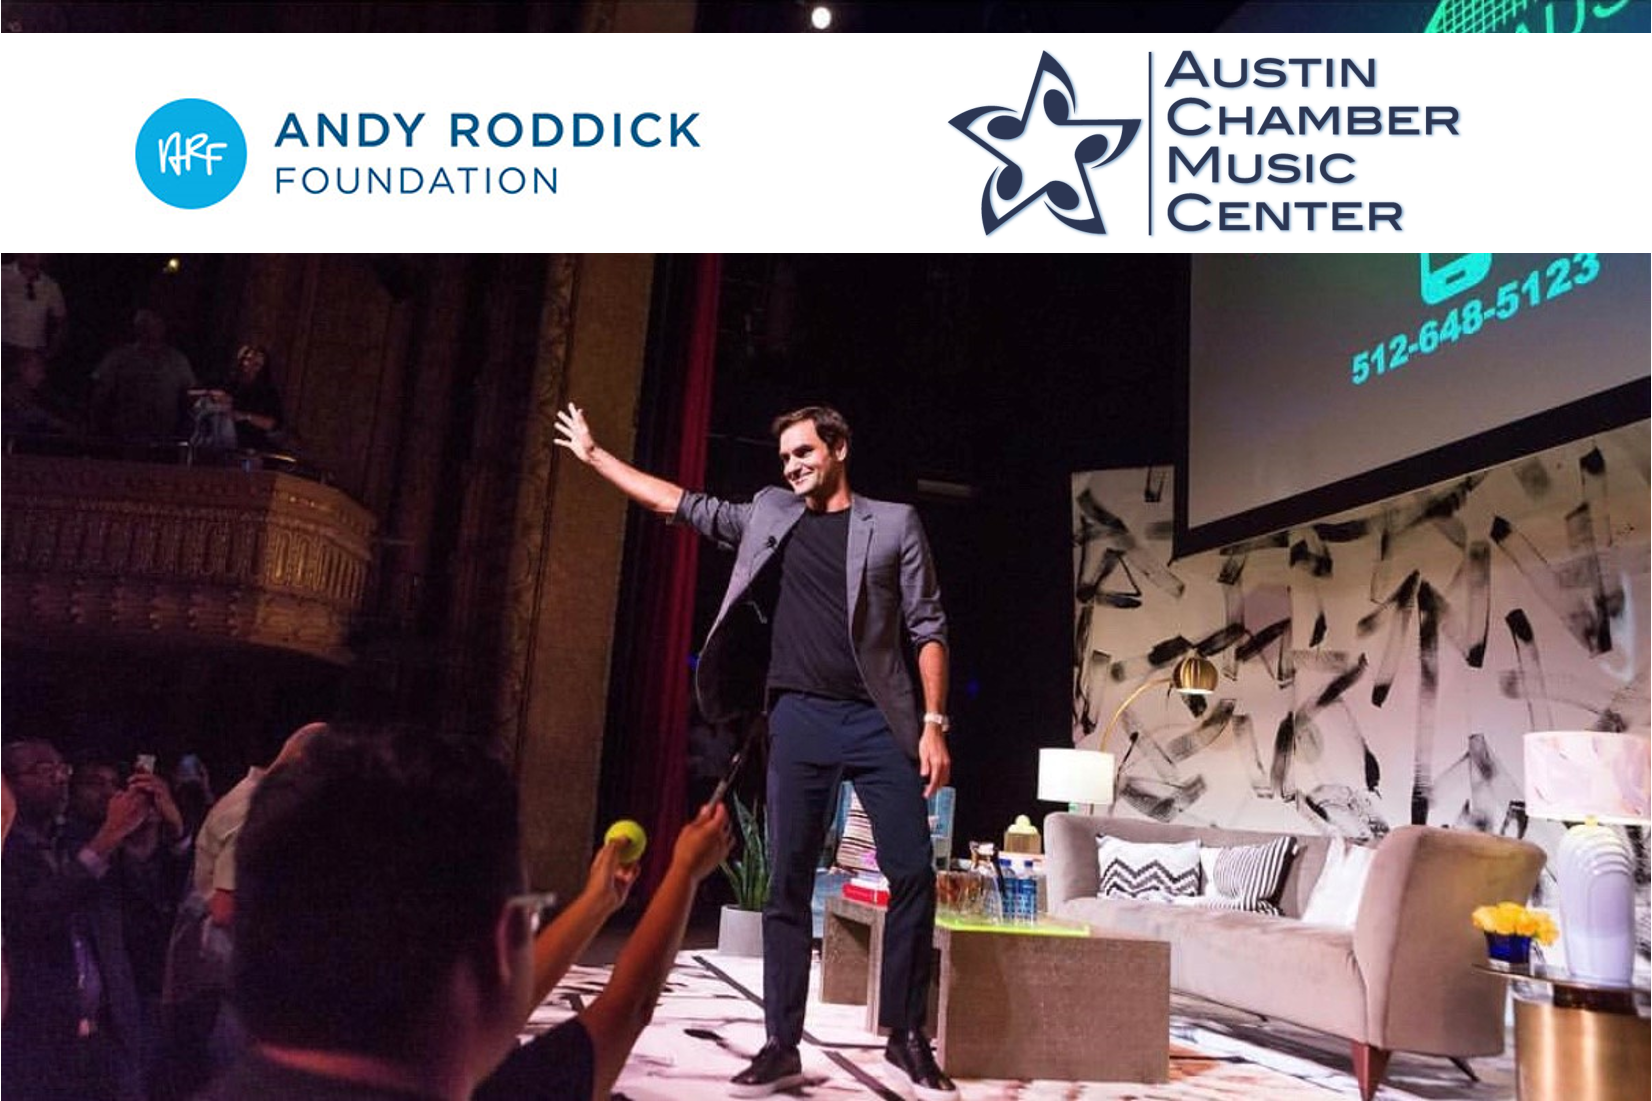 For the Giver - For your favorite, and always generous friend, consider donating to our two favorite non-profits. We love collaborating with them and love seeing them grow!Austin Chamber Music CenterorThe Andy Roddick Foundation